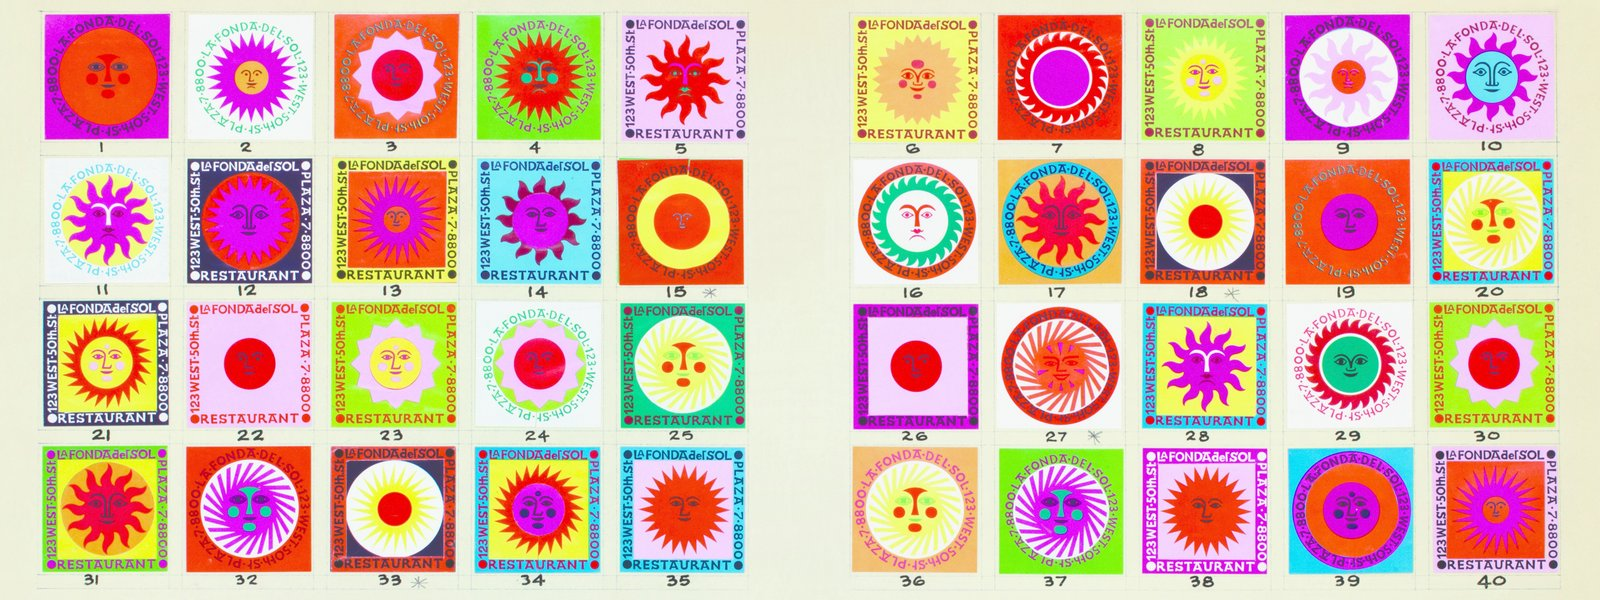 Oldham's tome on Alexander Girard drew extensively from the modernist icon's archives, including designs he did for the restaurant La Fonda del Sol in the 1960s.